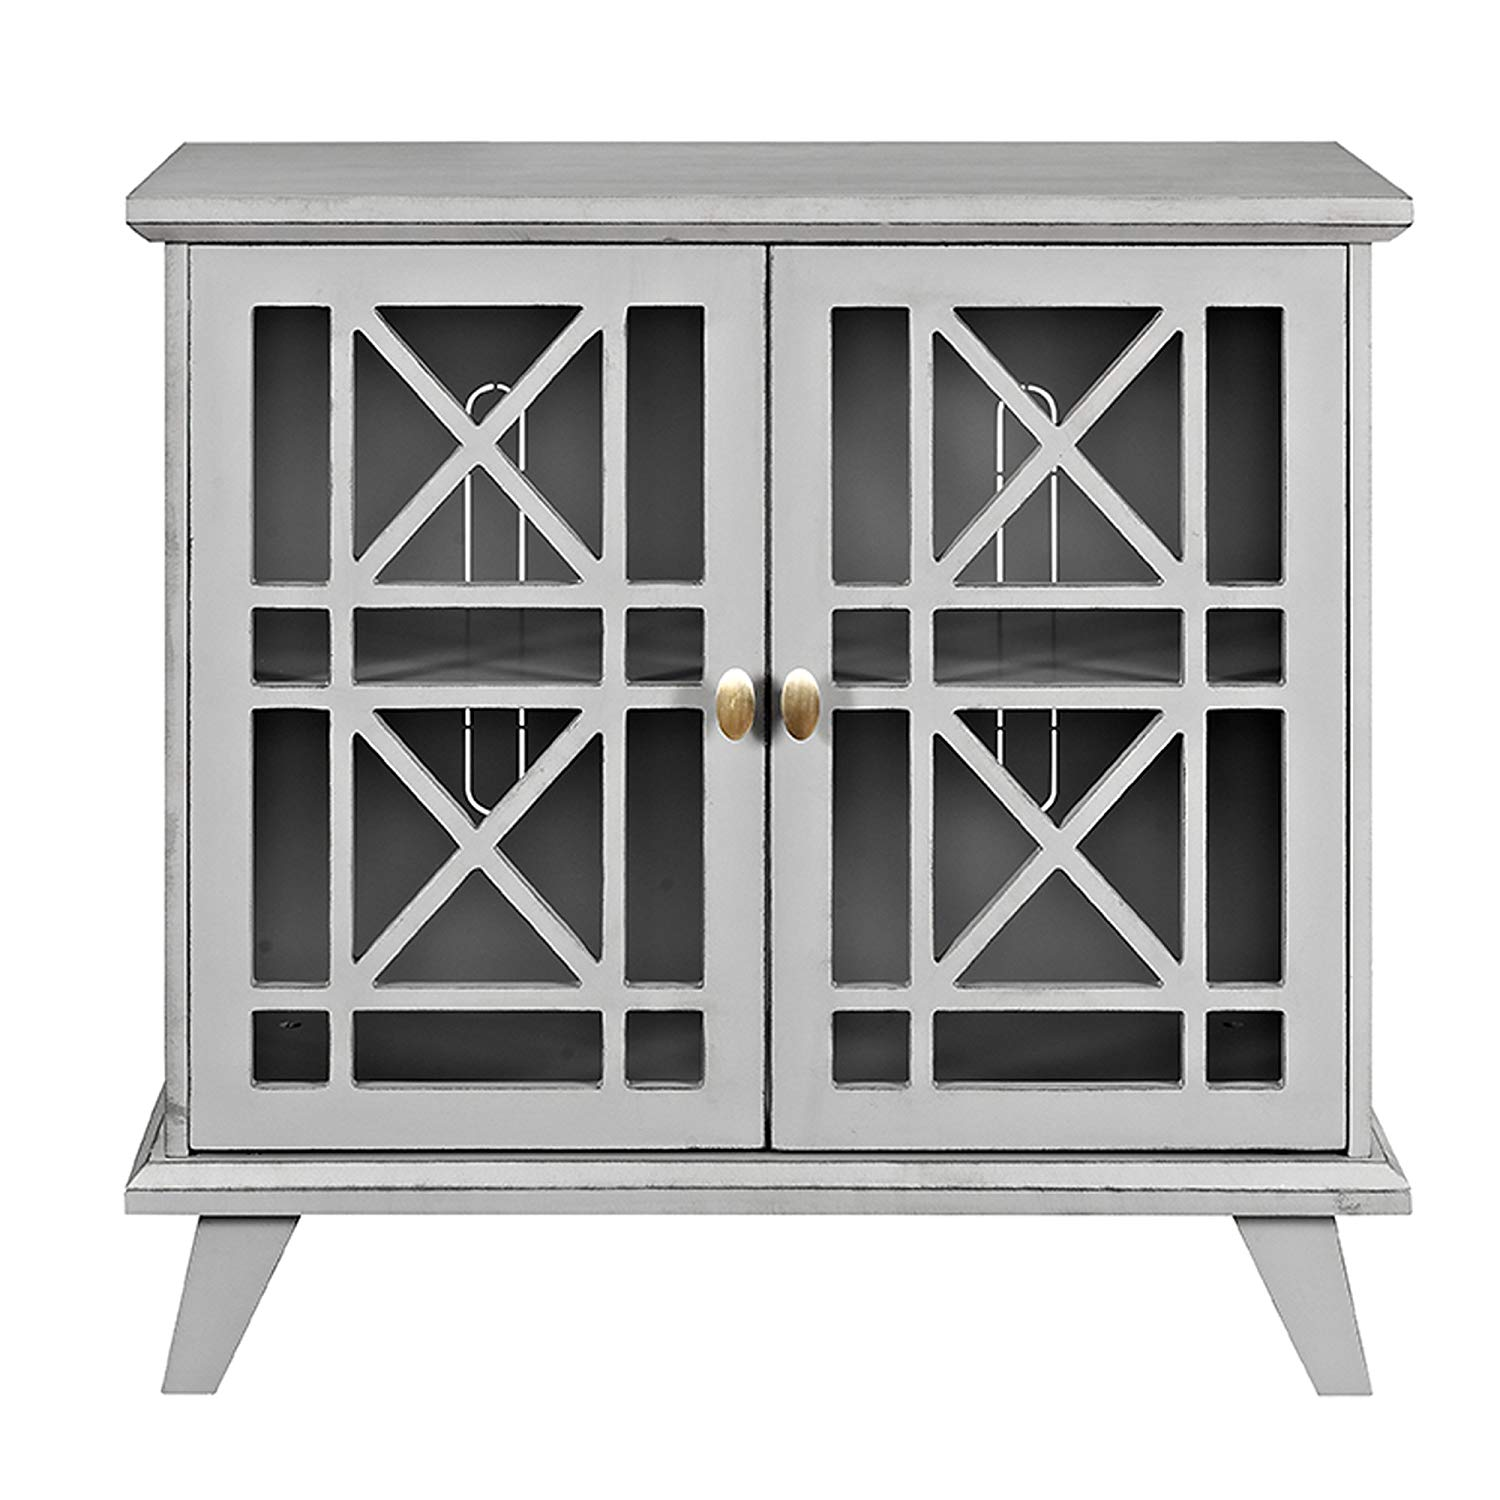 fretwork accent console gray tables threshold table teal industrial cart coffee sofa ideas round center for living room circle glass barnwood garden furniture chairs wicker drum